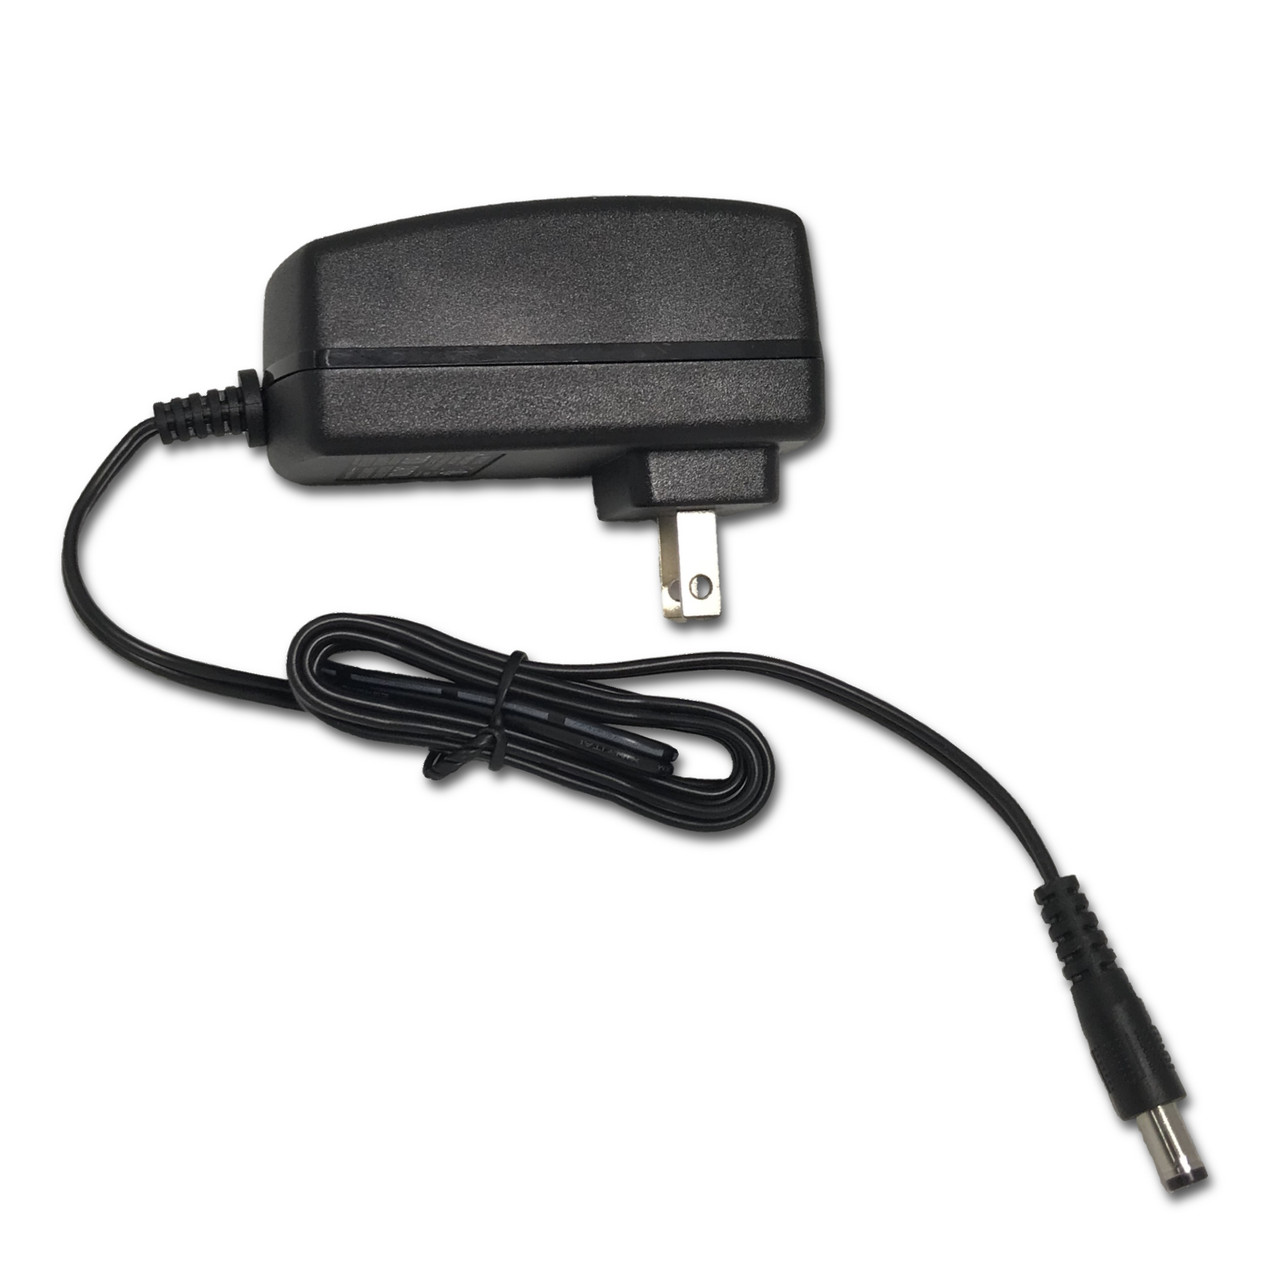 120VAC Wall Charger (included)